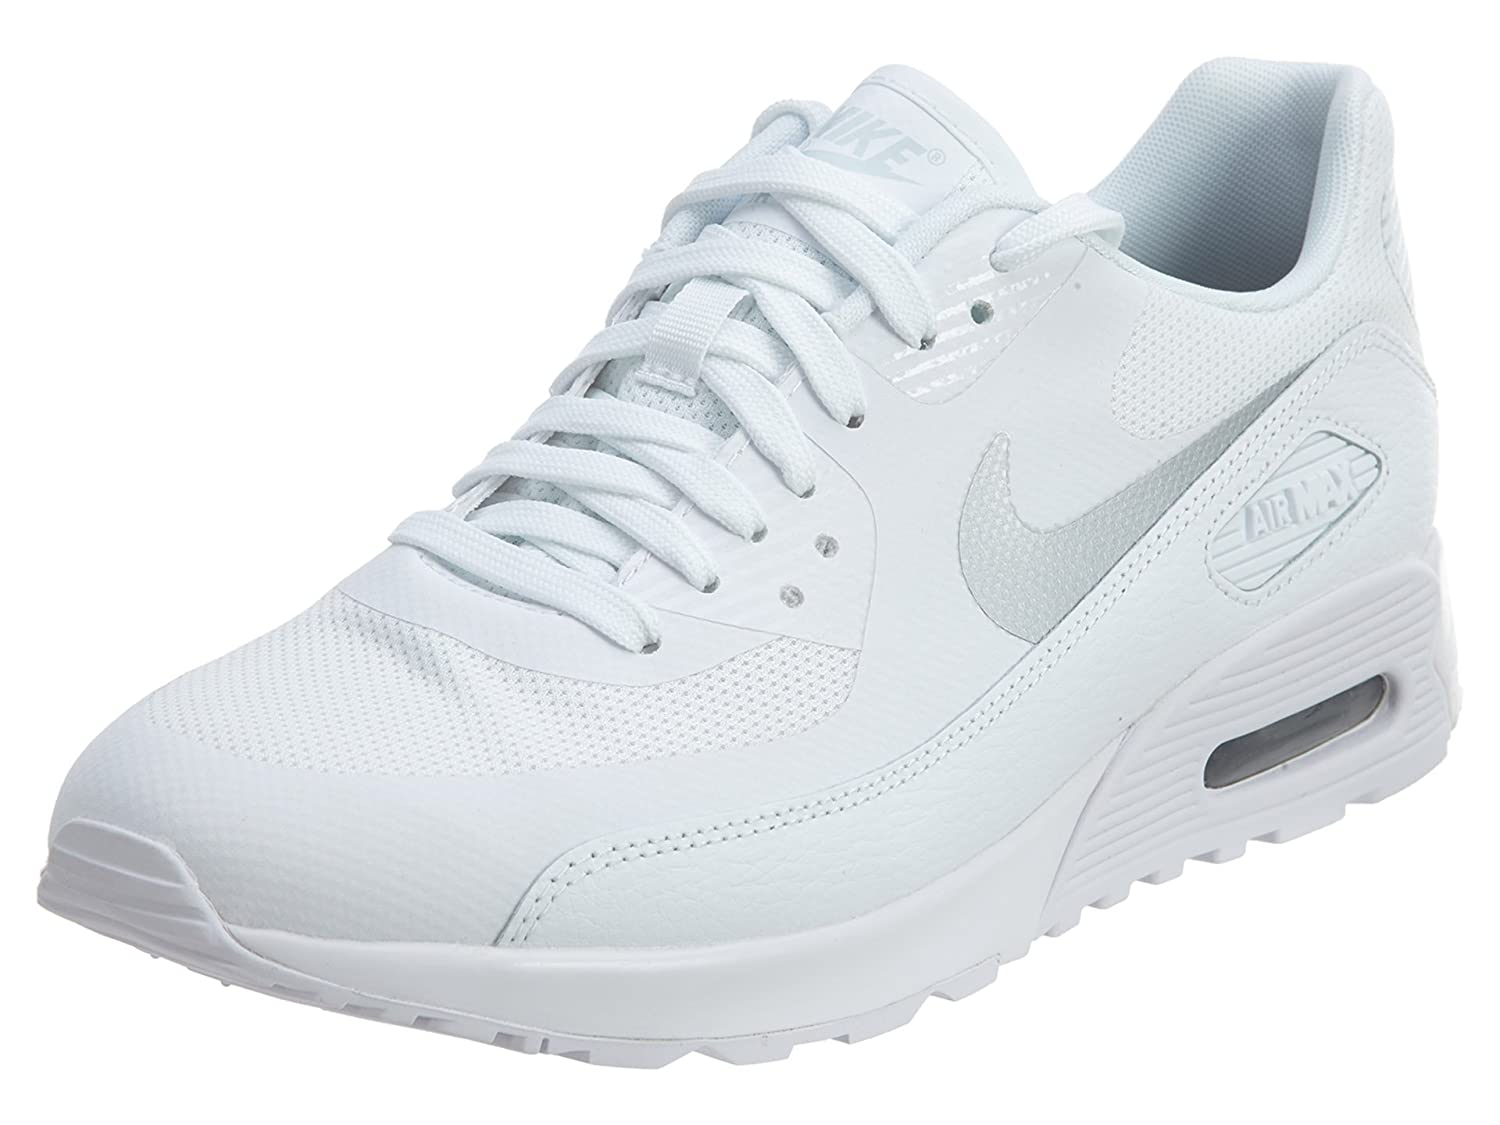 best sneakers 3170e 79406 Amazon.com   NIKE Air Max 90 Ultra 2.0 Womens Style   881106-101 Size    10.5 B(M) US   Flats